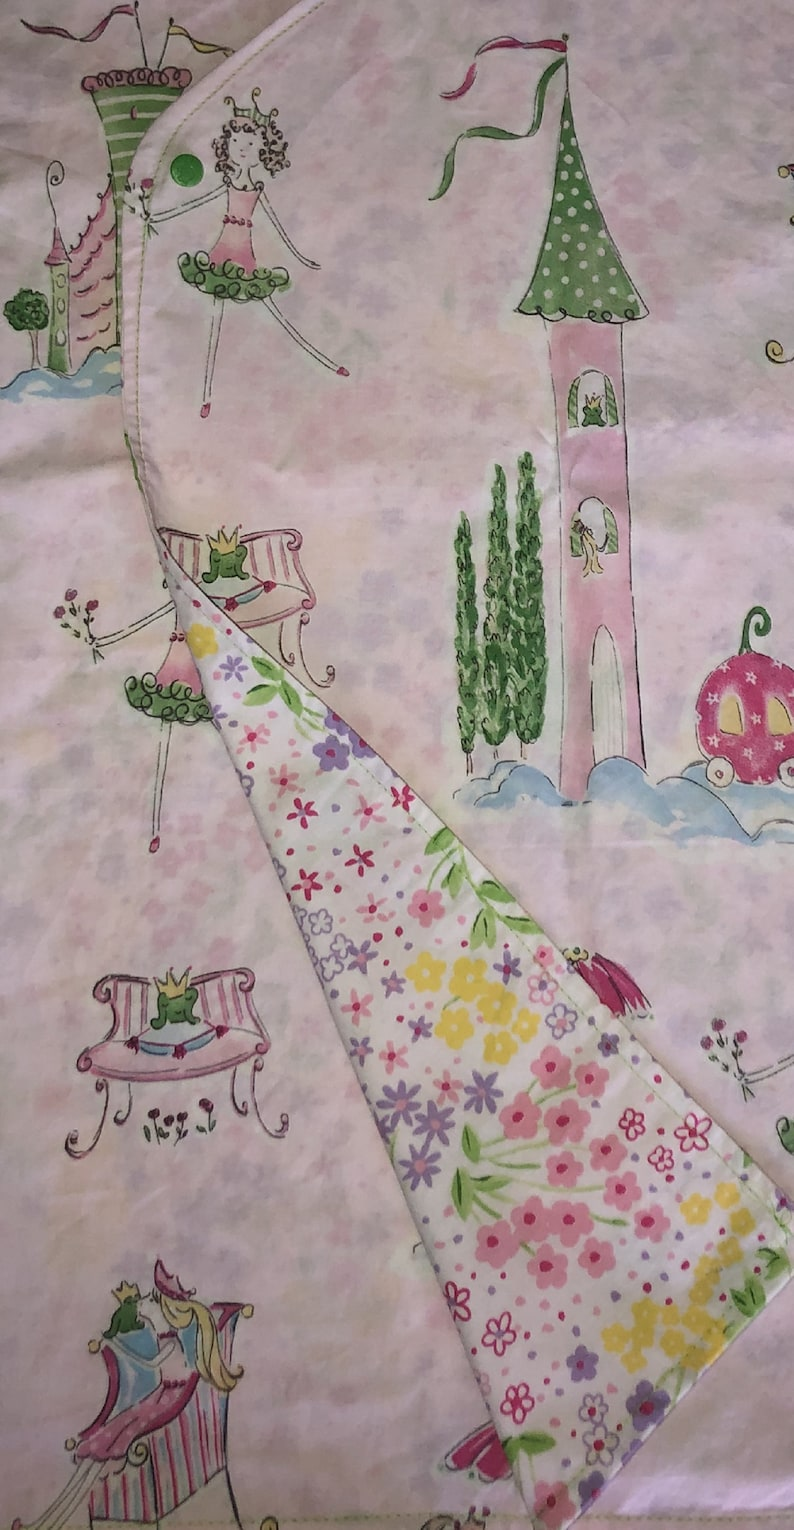 Child Size 67 Hospital Gown Princess and the FrogFlower Garden